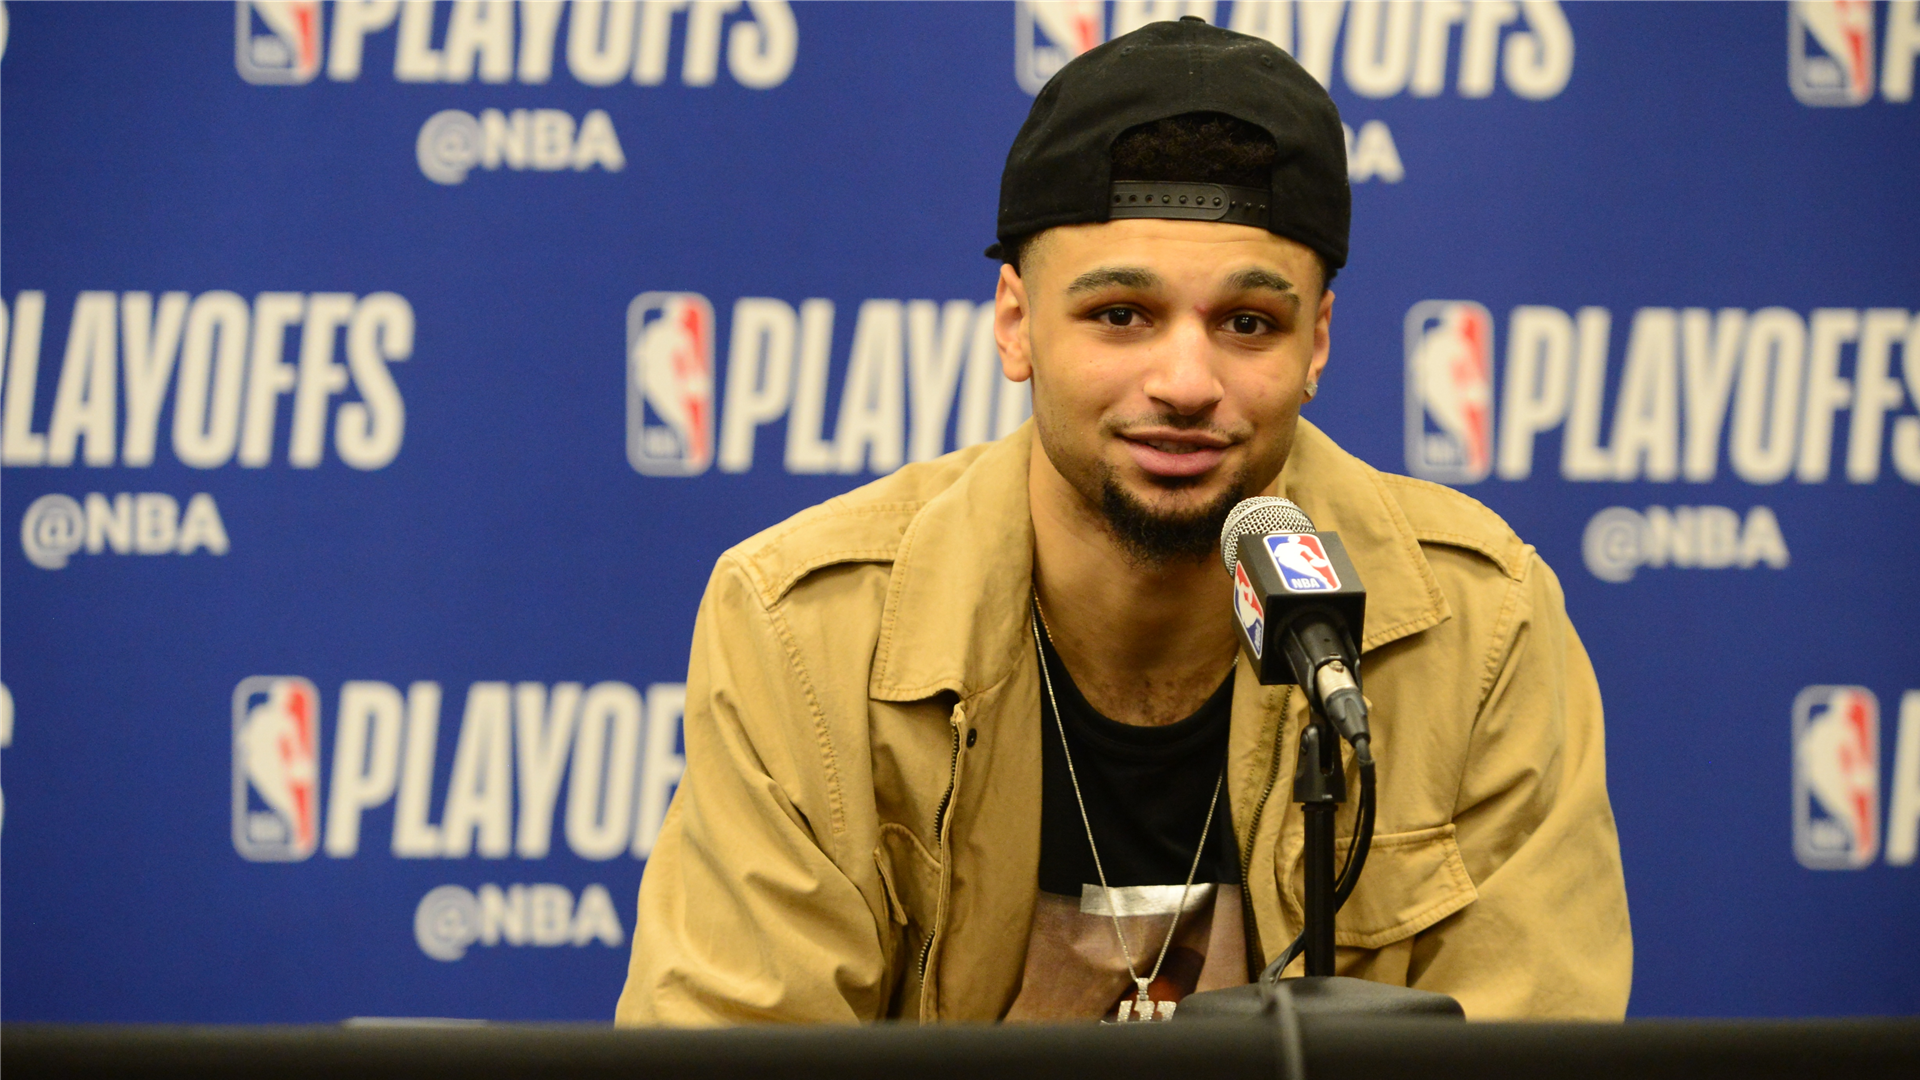 NBA Playoffs 2019: 'He doesn't force any plays' - Jamal Murray talks